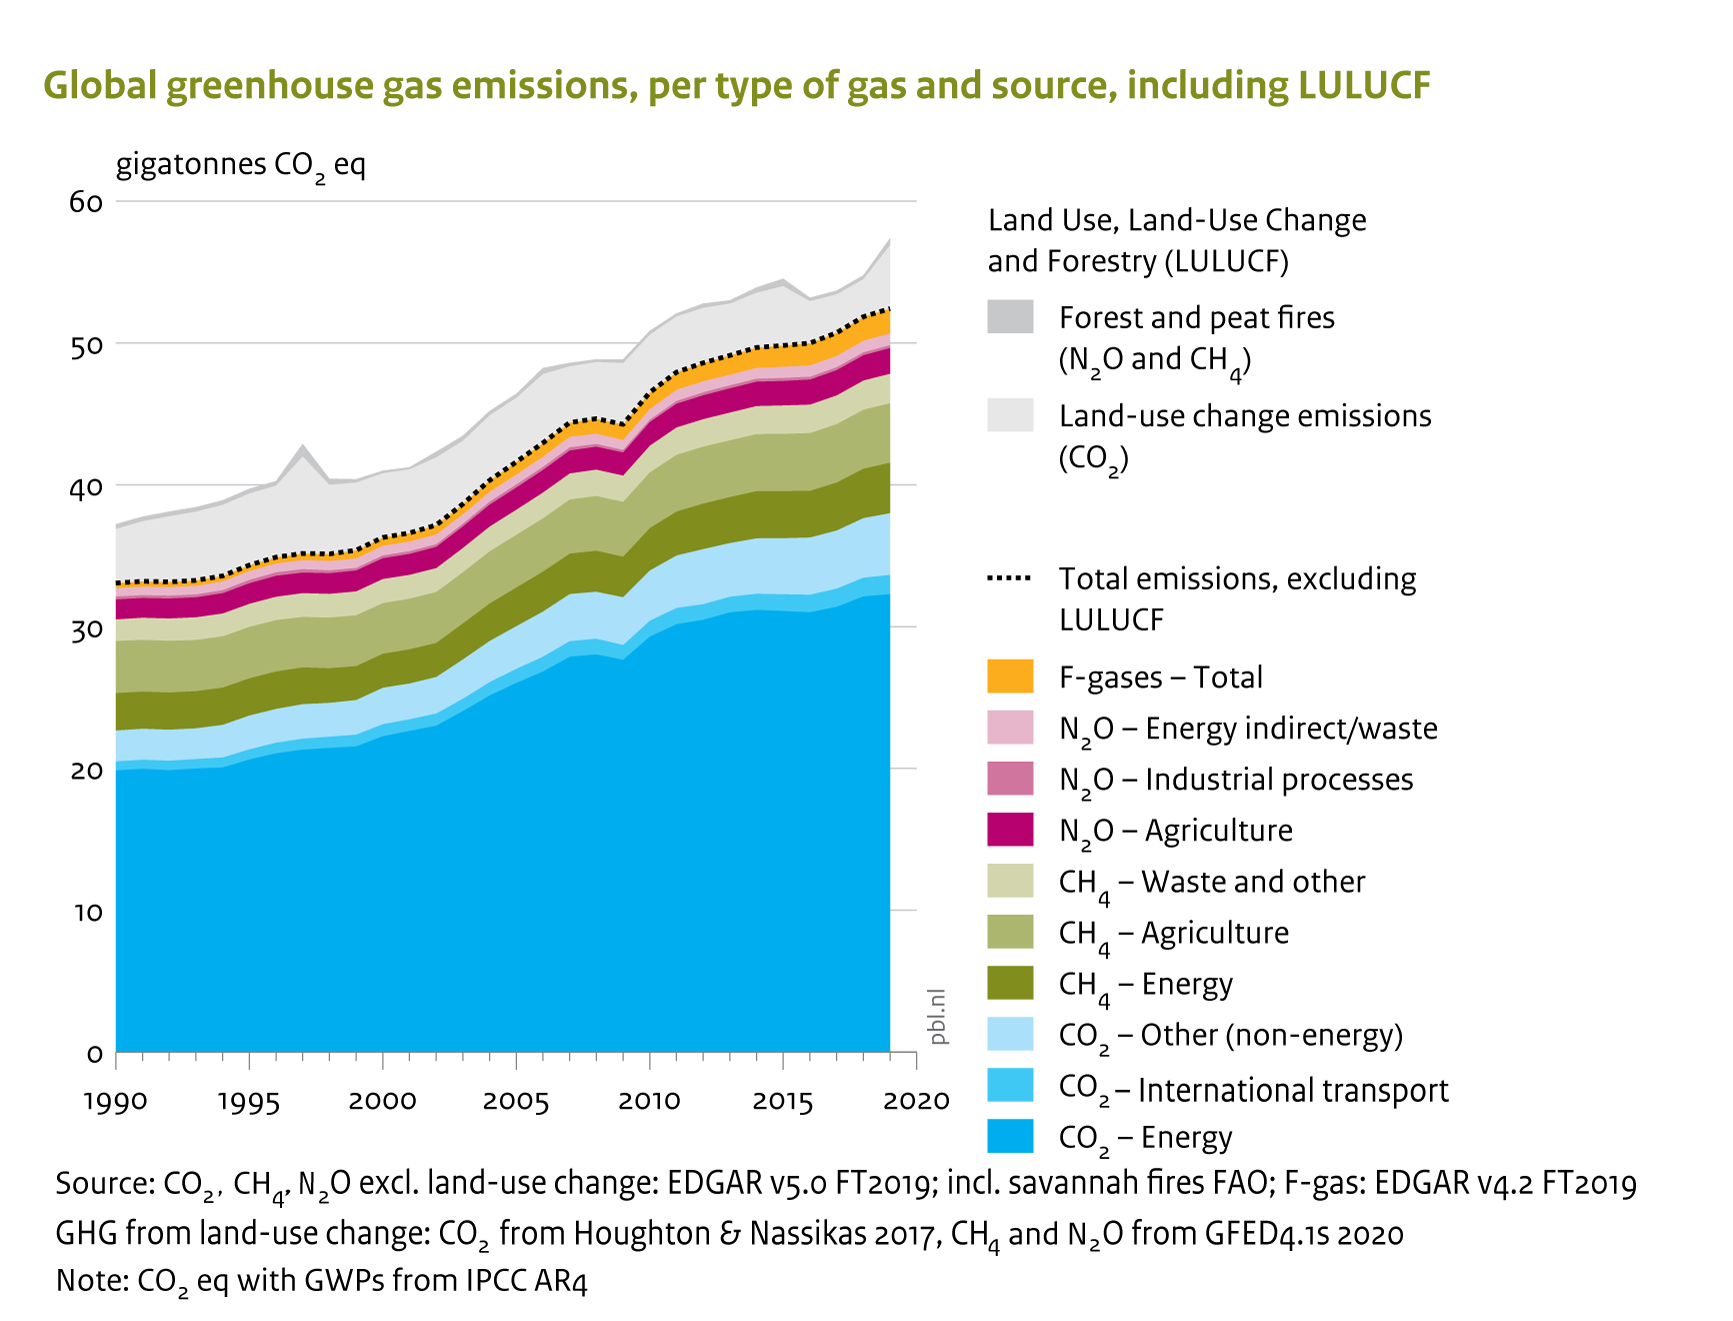 In 2019 the increase in global greenhouse gas emissions continued at a rate of 1.1% per year, reaching 52.4 gigatonnes of CO2 equivalent (GtCO2 eq), excluding land-use change.